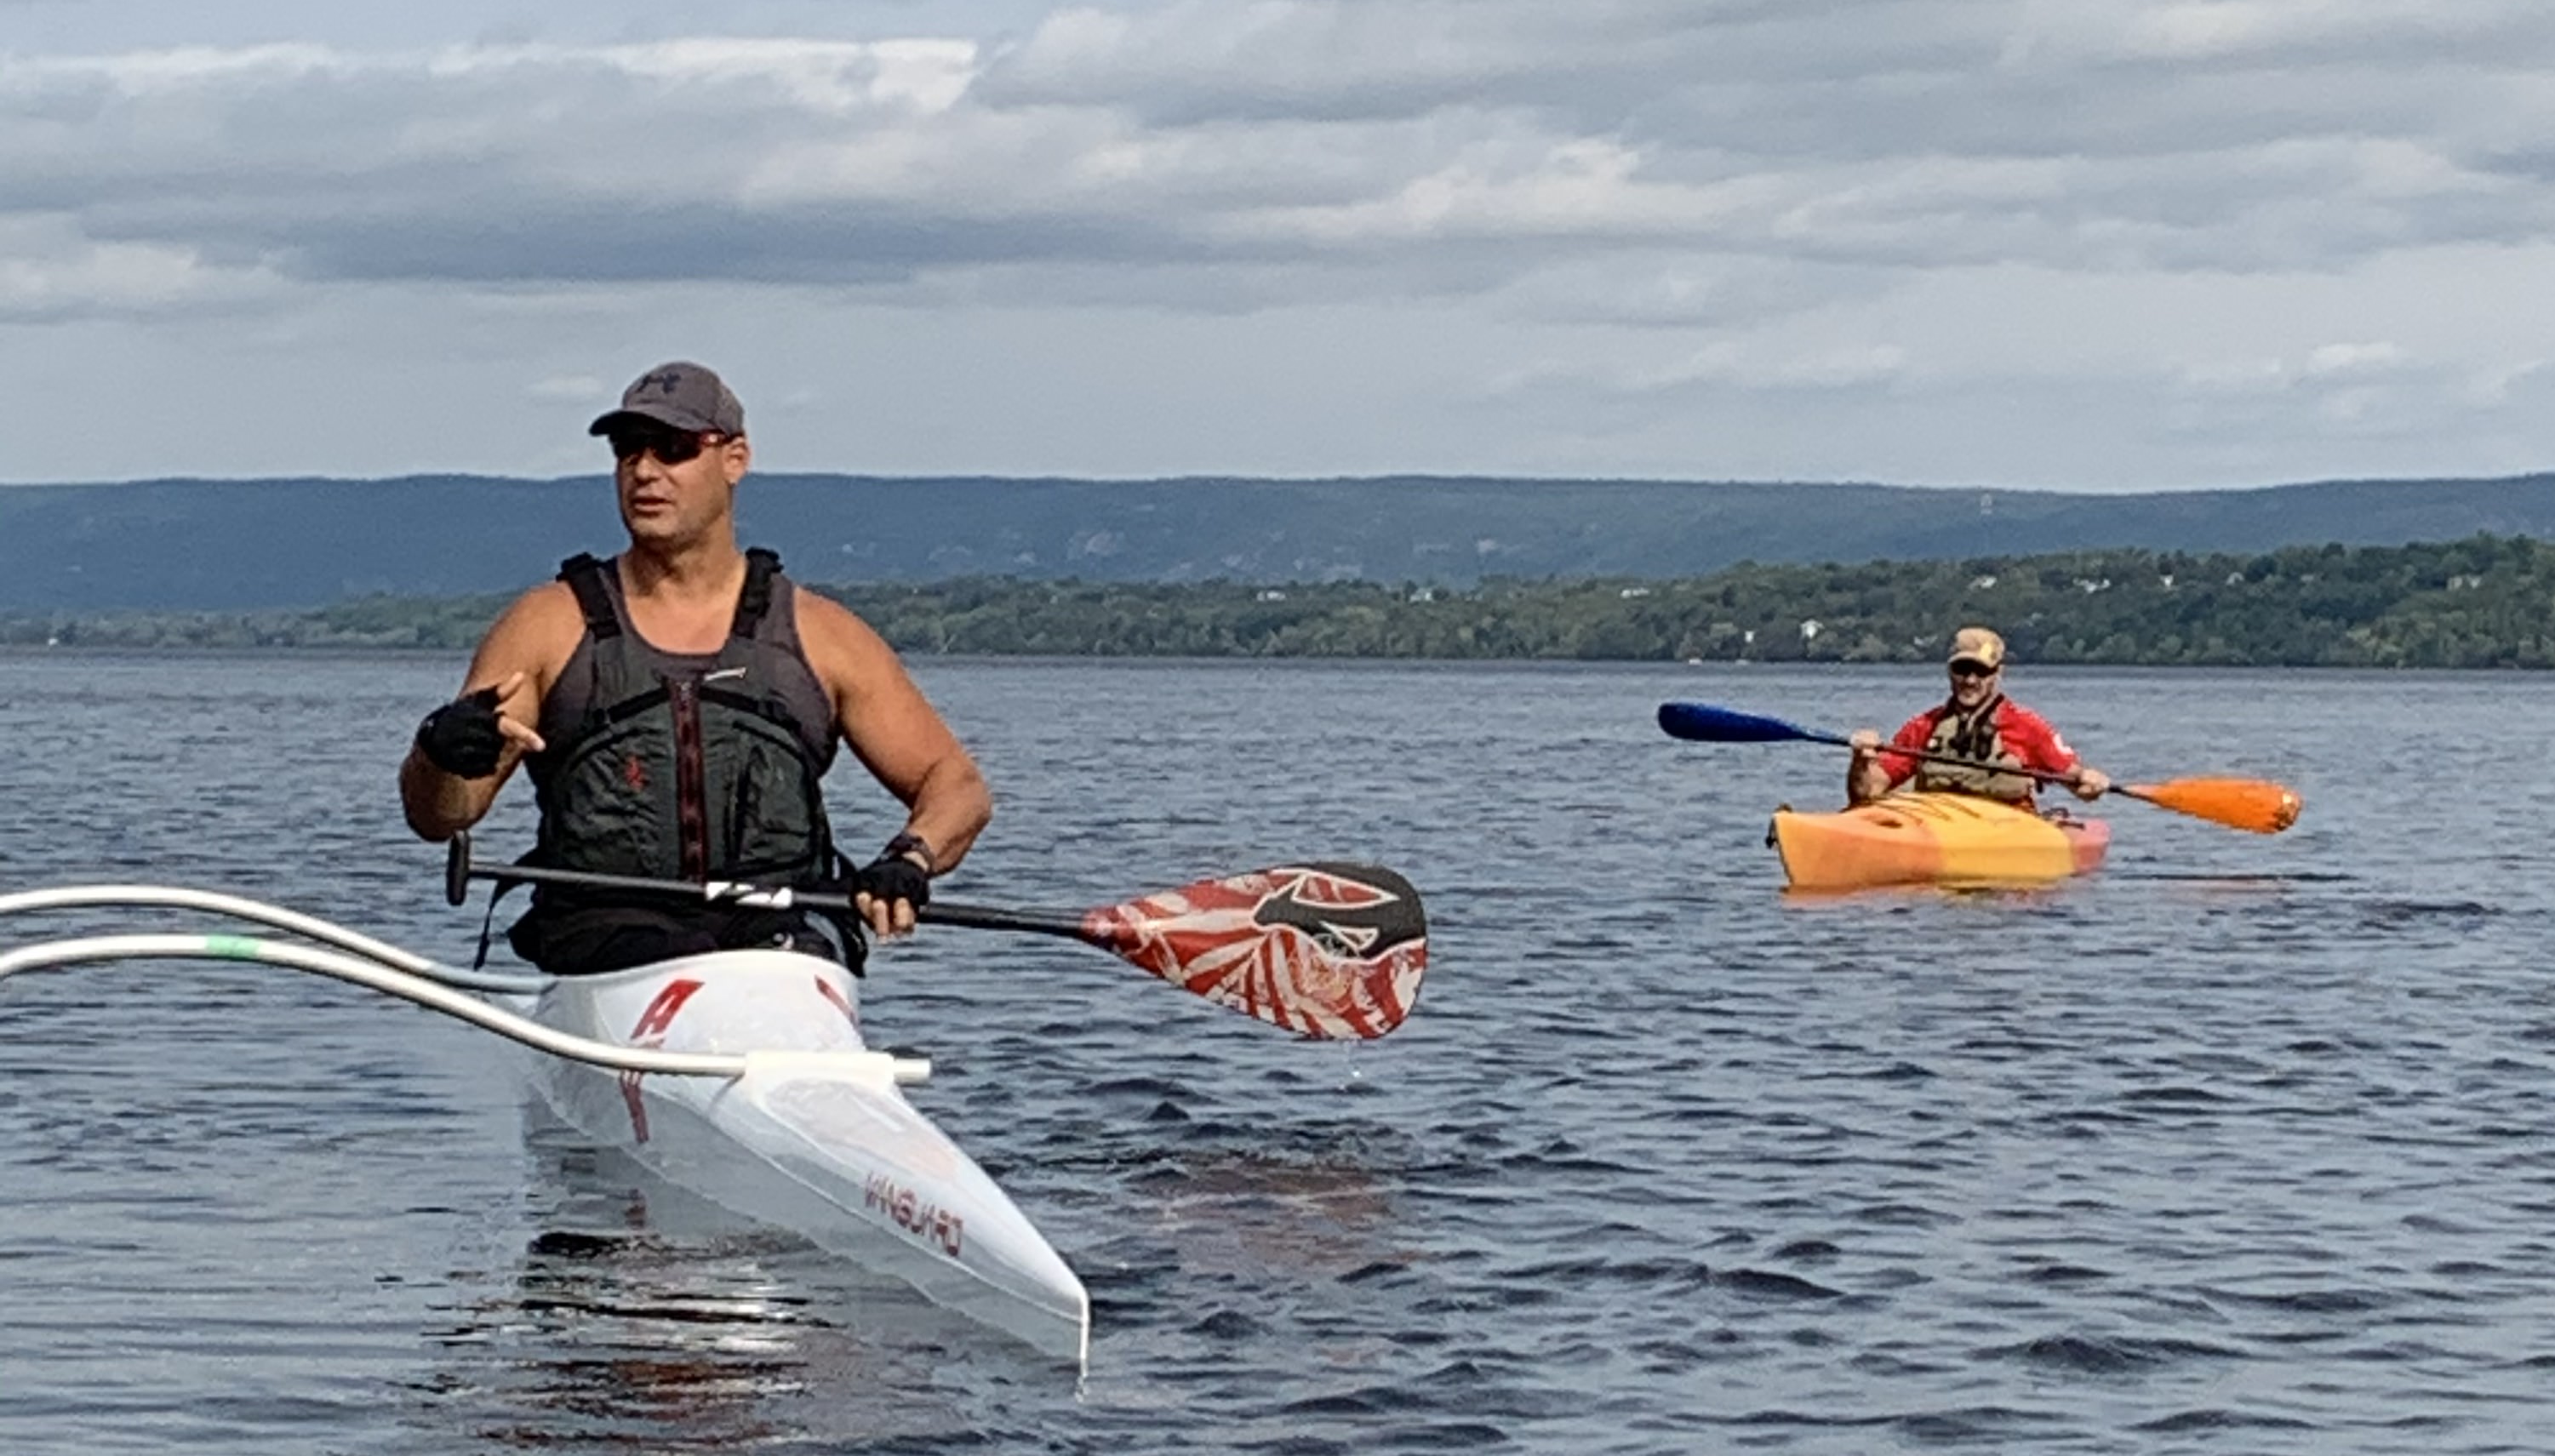 Mike Trauner Joins Members on Kayaking Expedition Image